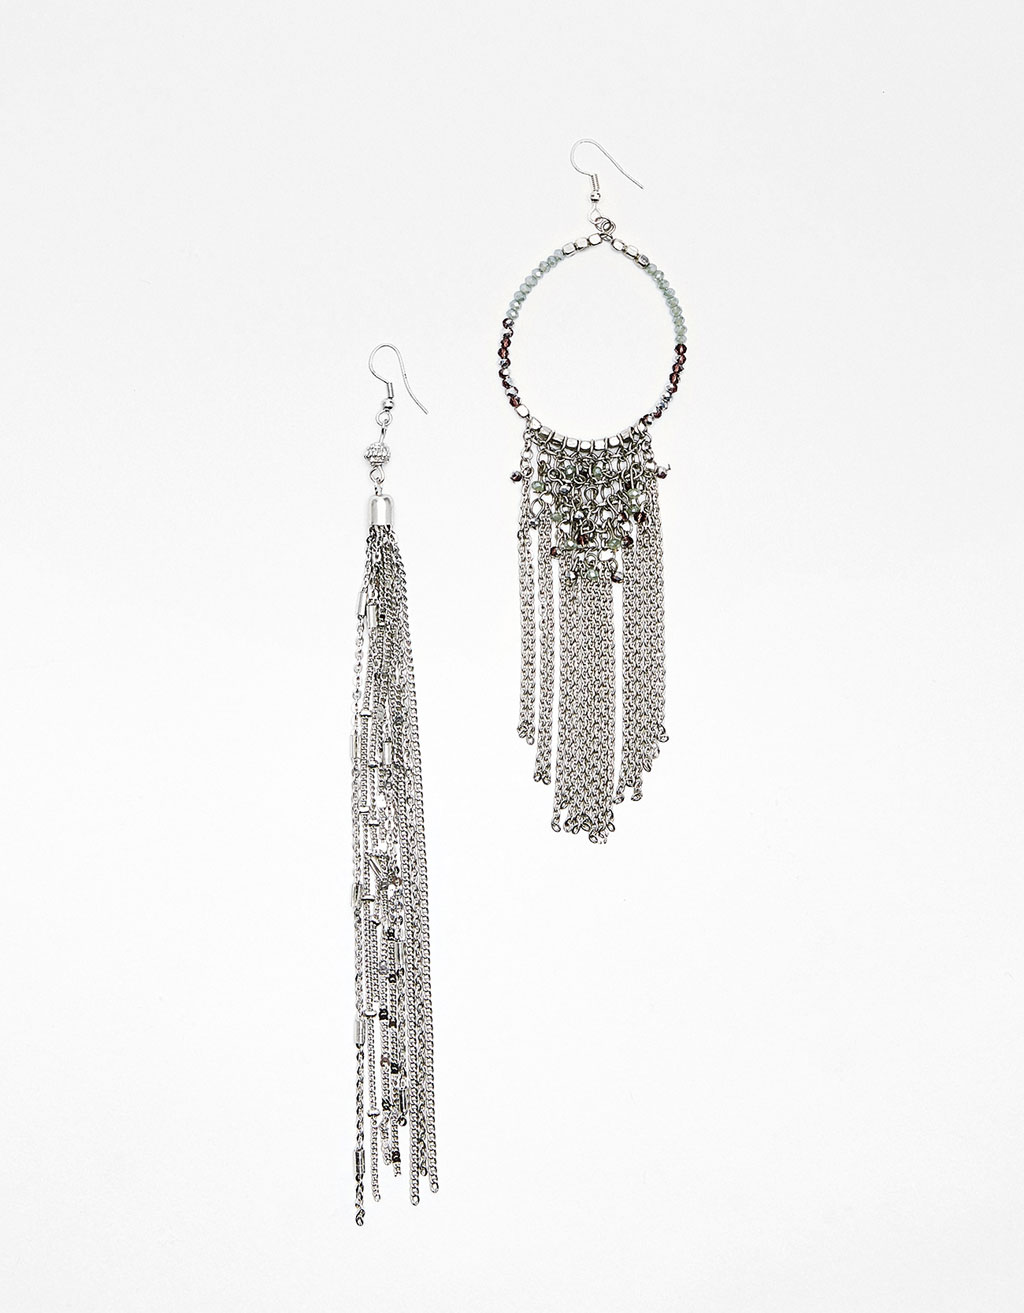 Mix&Match chain and beads earrings